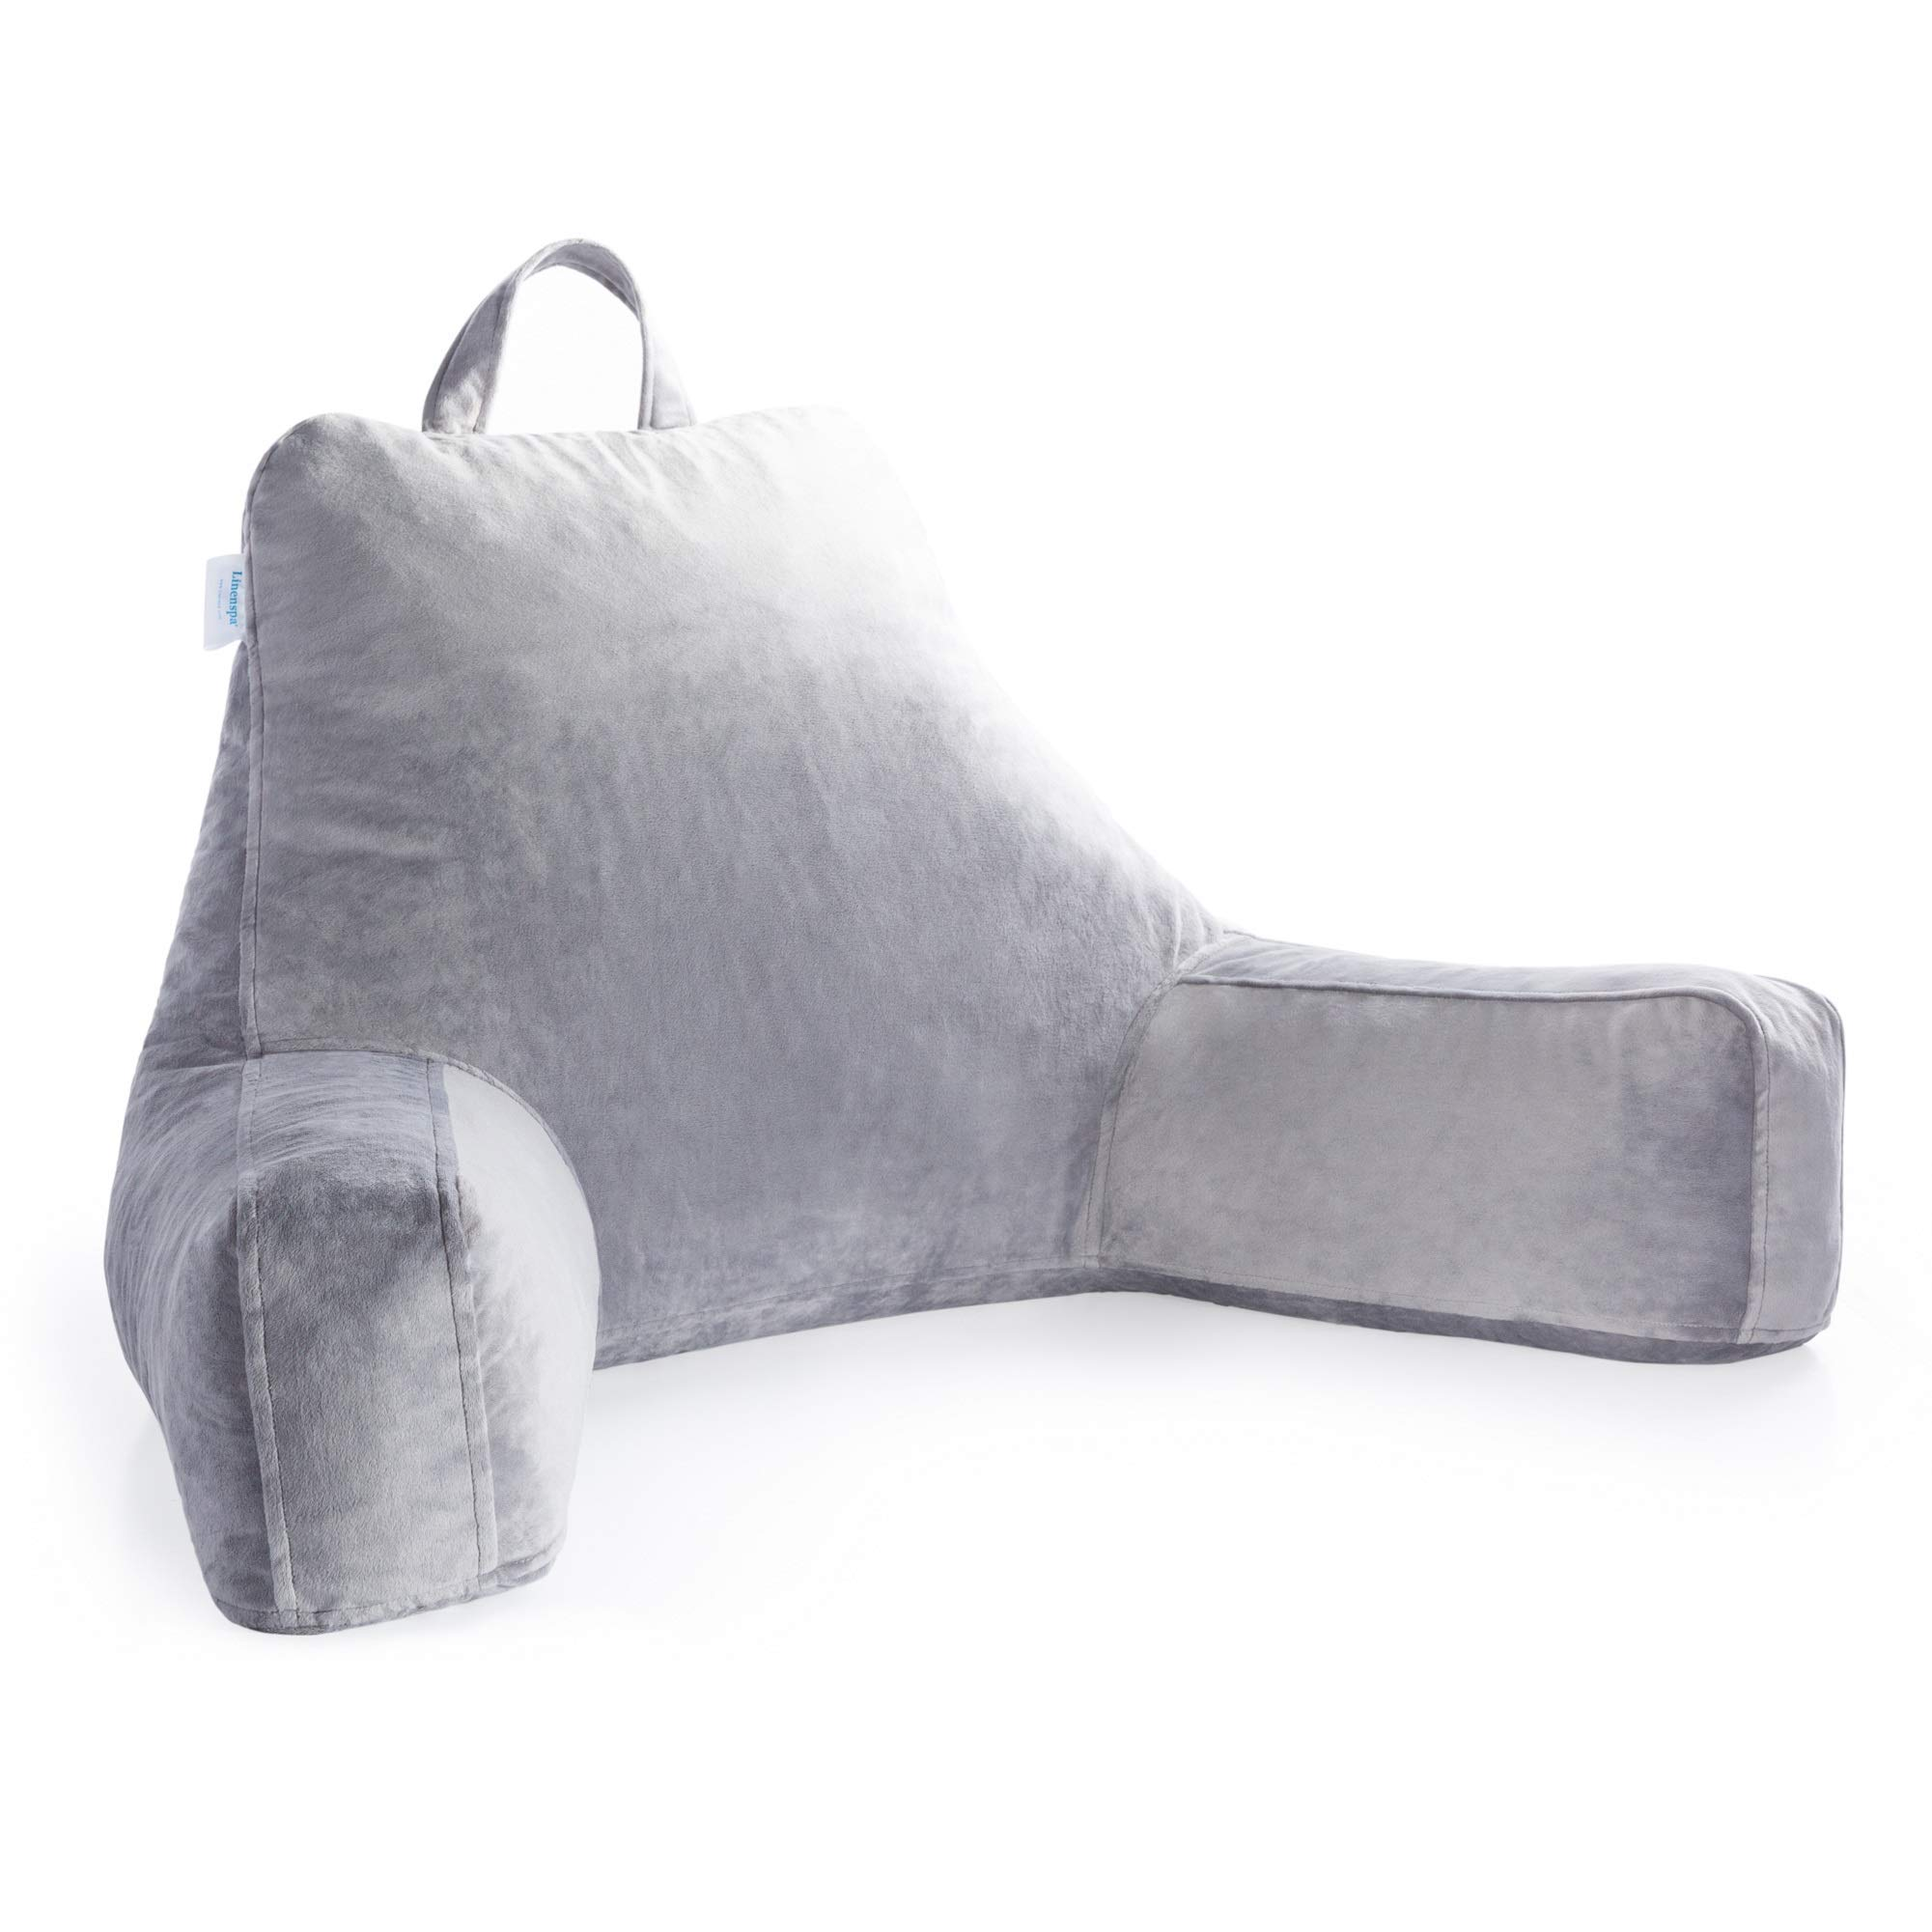 Linenspa Shredded Foam Reading Pillow - Extra Large Design for Adults - Perfect for Back Support While Relaxing, Gaming, Reading, or Watching TV - Soft Velour Cover (Renewed)